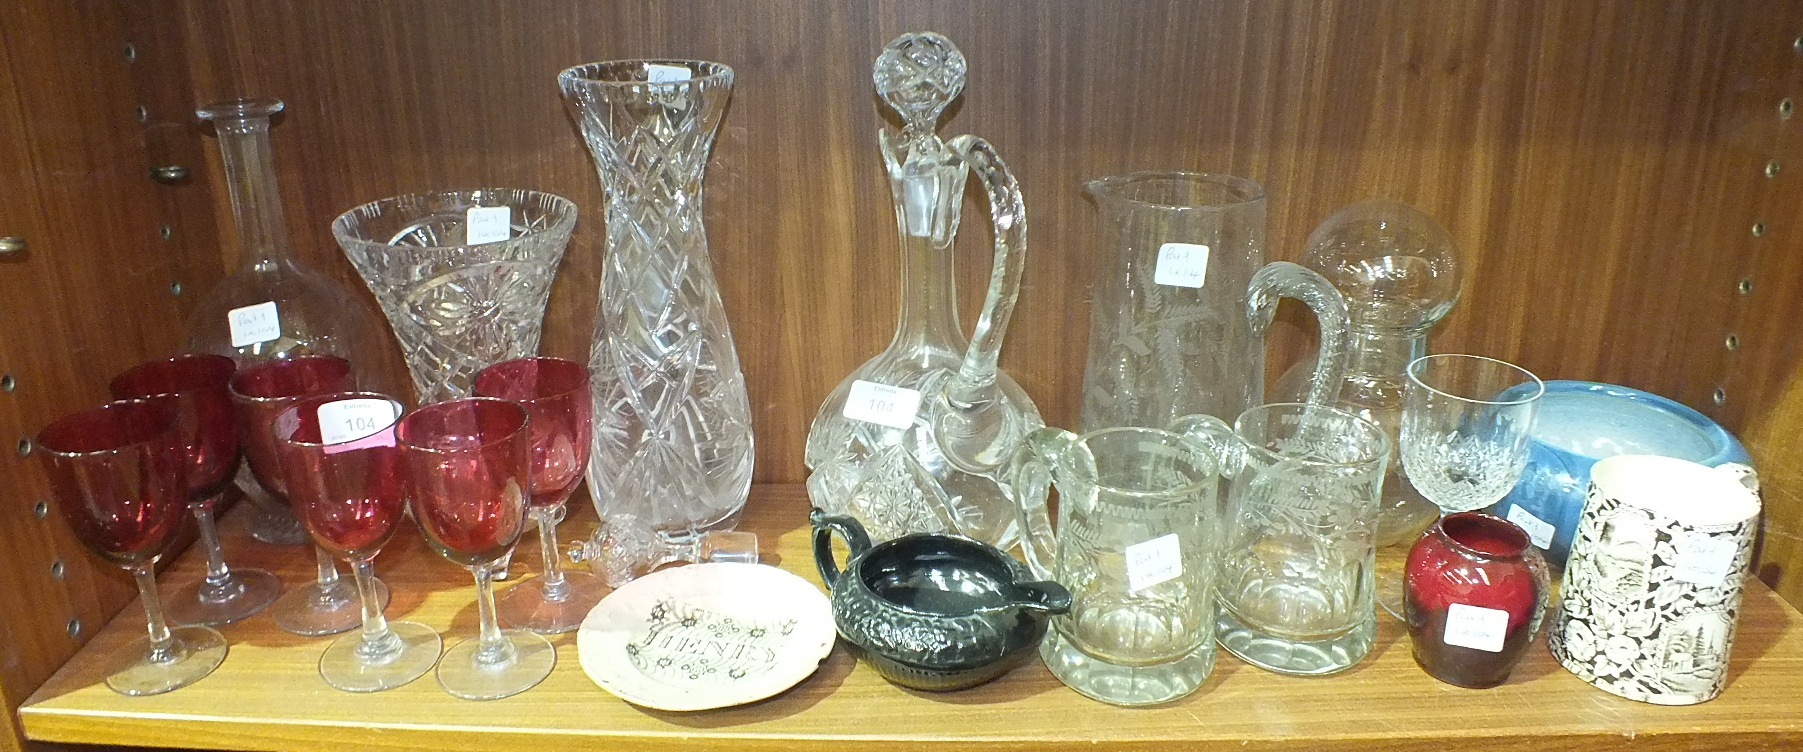 Lot 104 - A cut-glass wine jug and stopper, six cranberry Port glasses and other glassware.